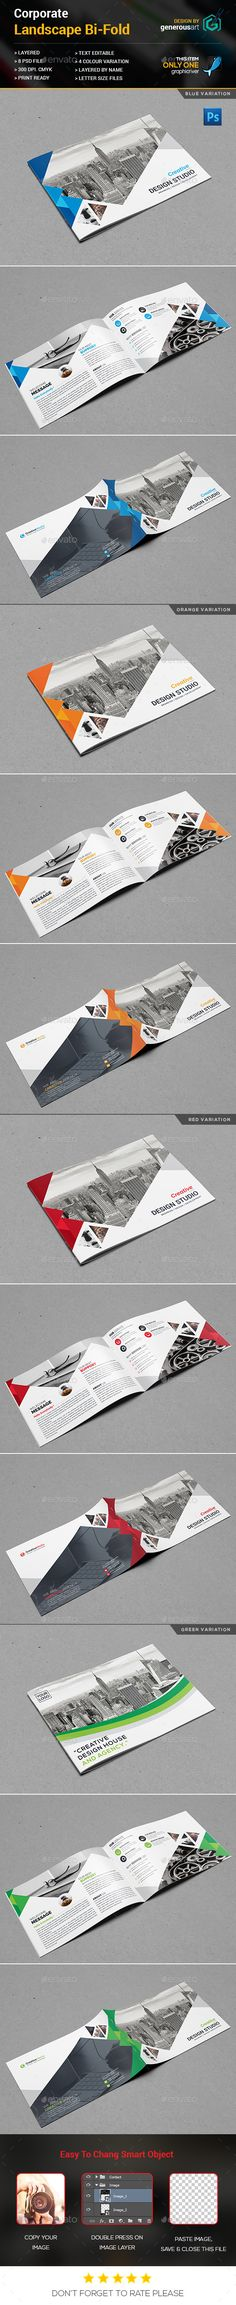 Landscape Bi-Fold Brochure Template PSD. Download here: https://graphicriver.net/item/landscape-bifold-brochure/17044735?ref=ksioks